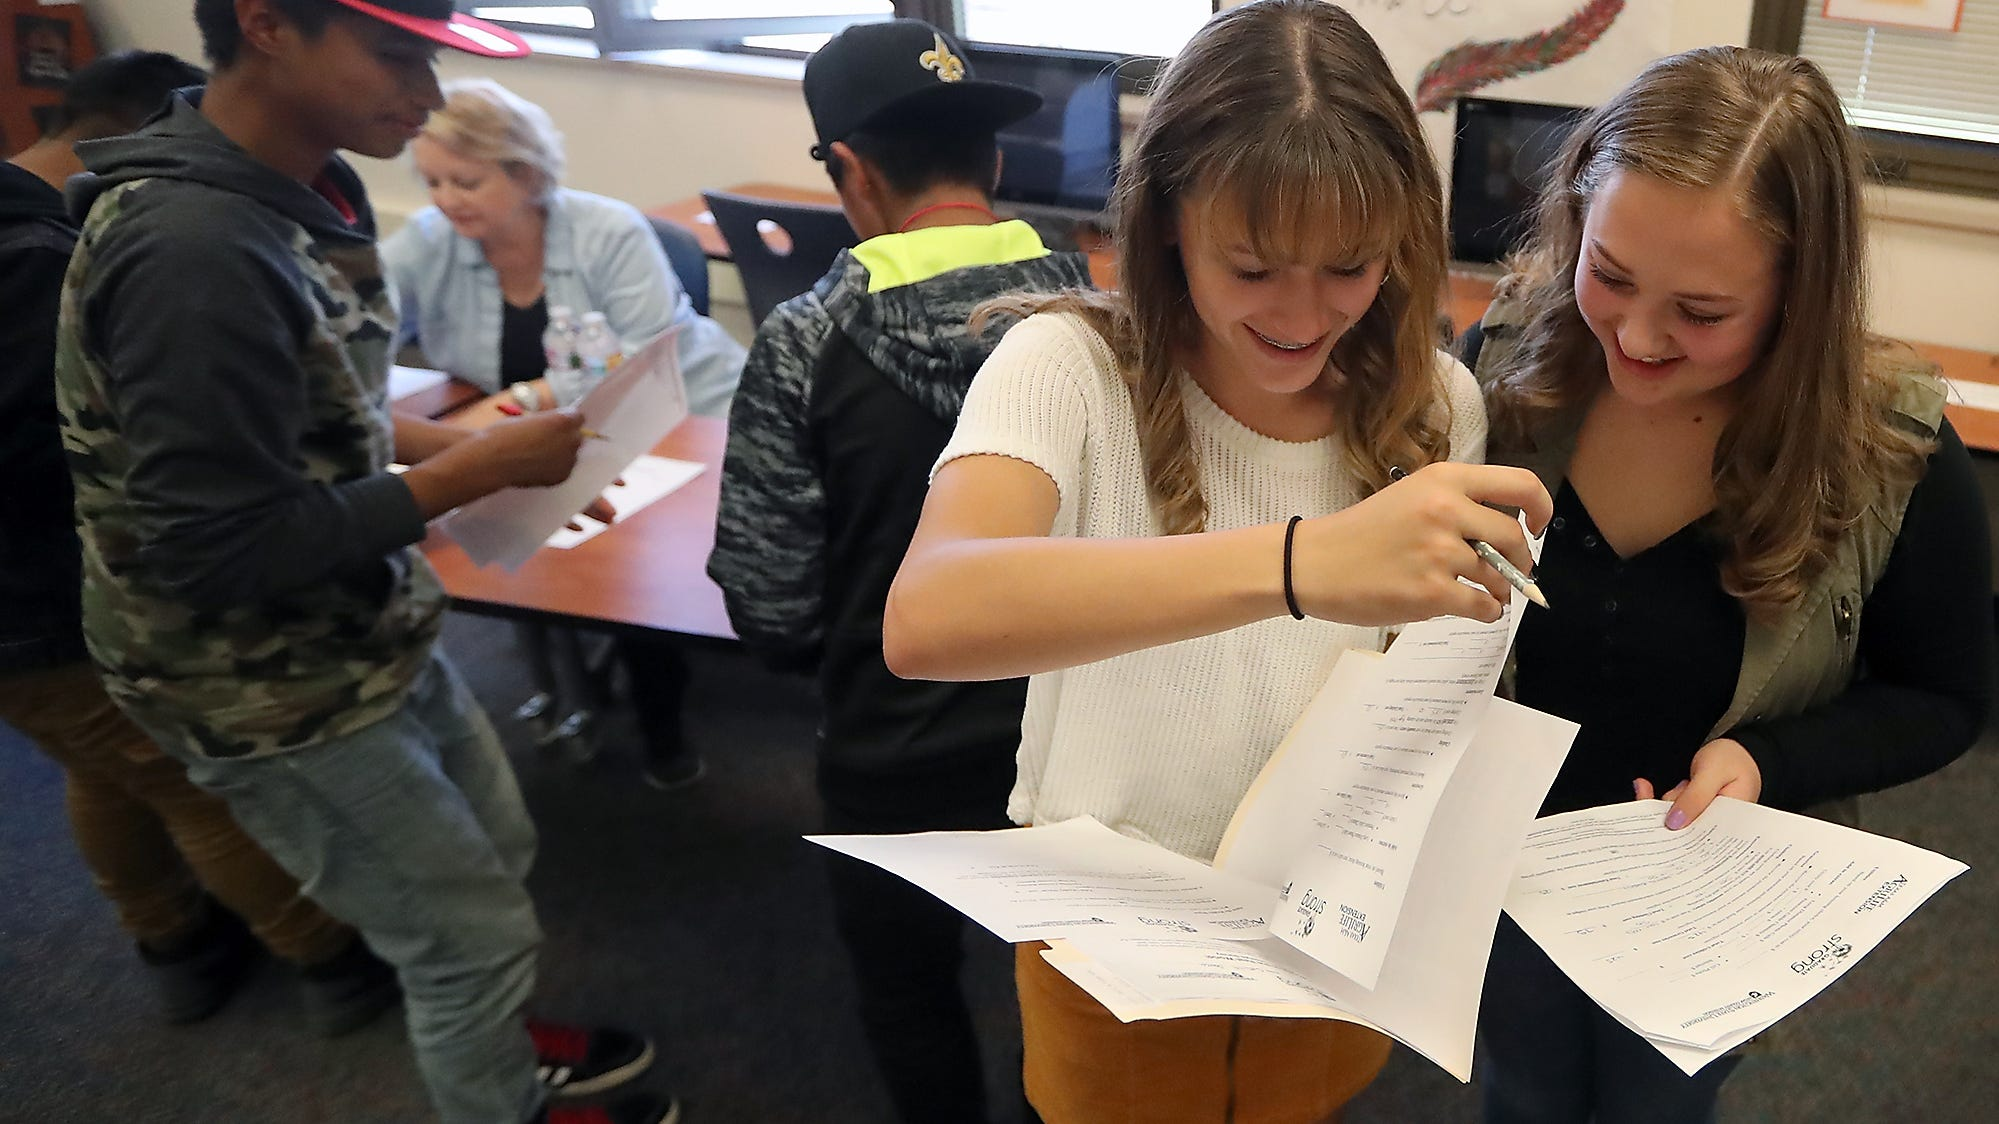 Freshmen classmates Cecilia Souza (left) and Marli Stodden look over their budget sheets as they take part in It's Your Future Day at Bremerton High School on Thursday, October 18, 2018.